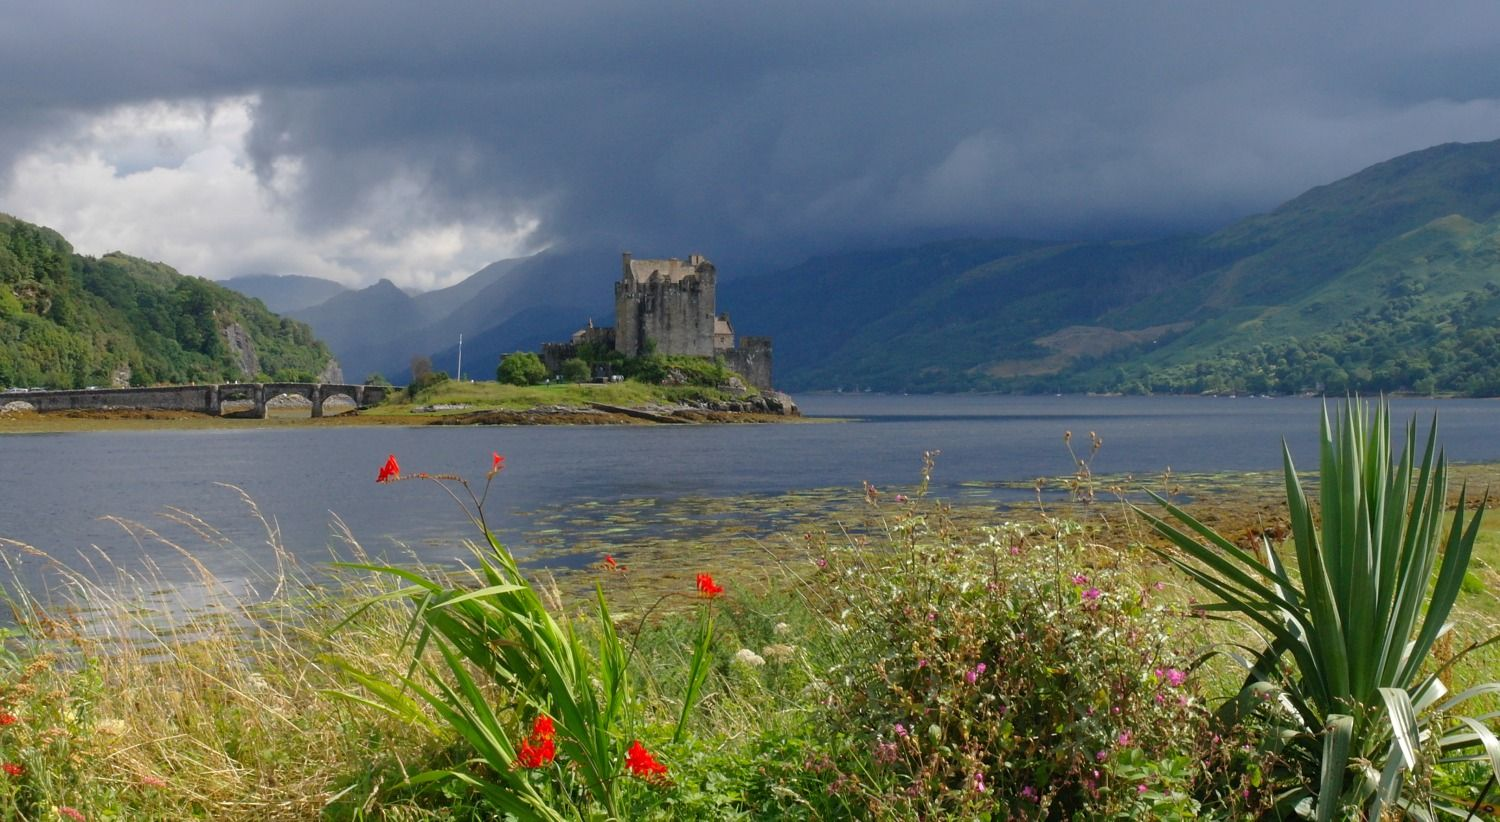 Eilean Donan Castle, iconic image of Scotland, on the road to Skye